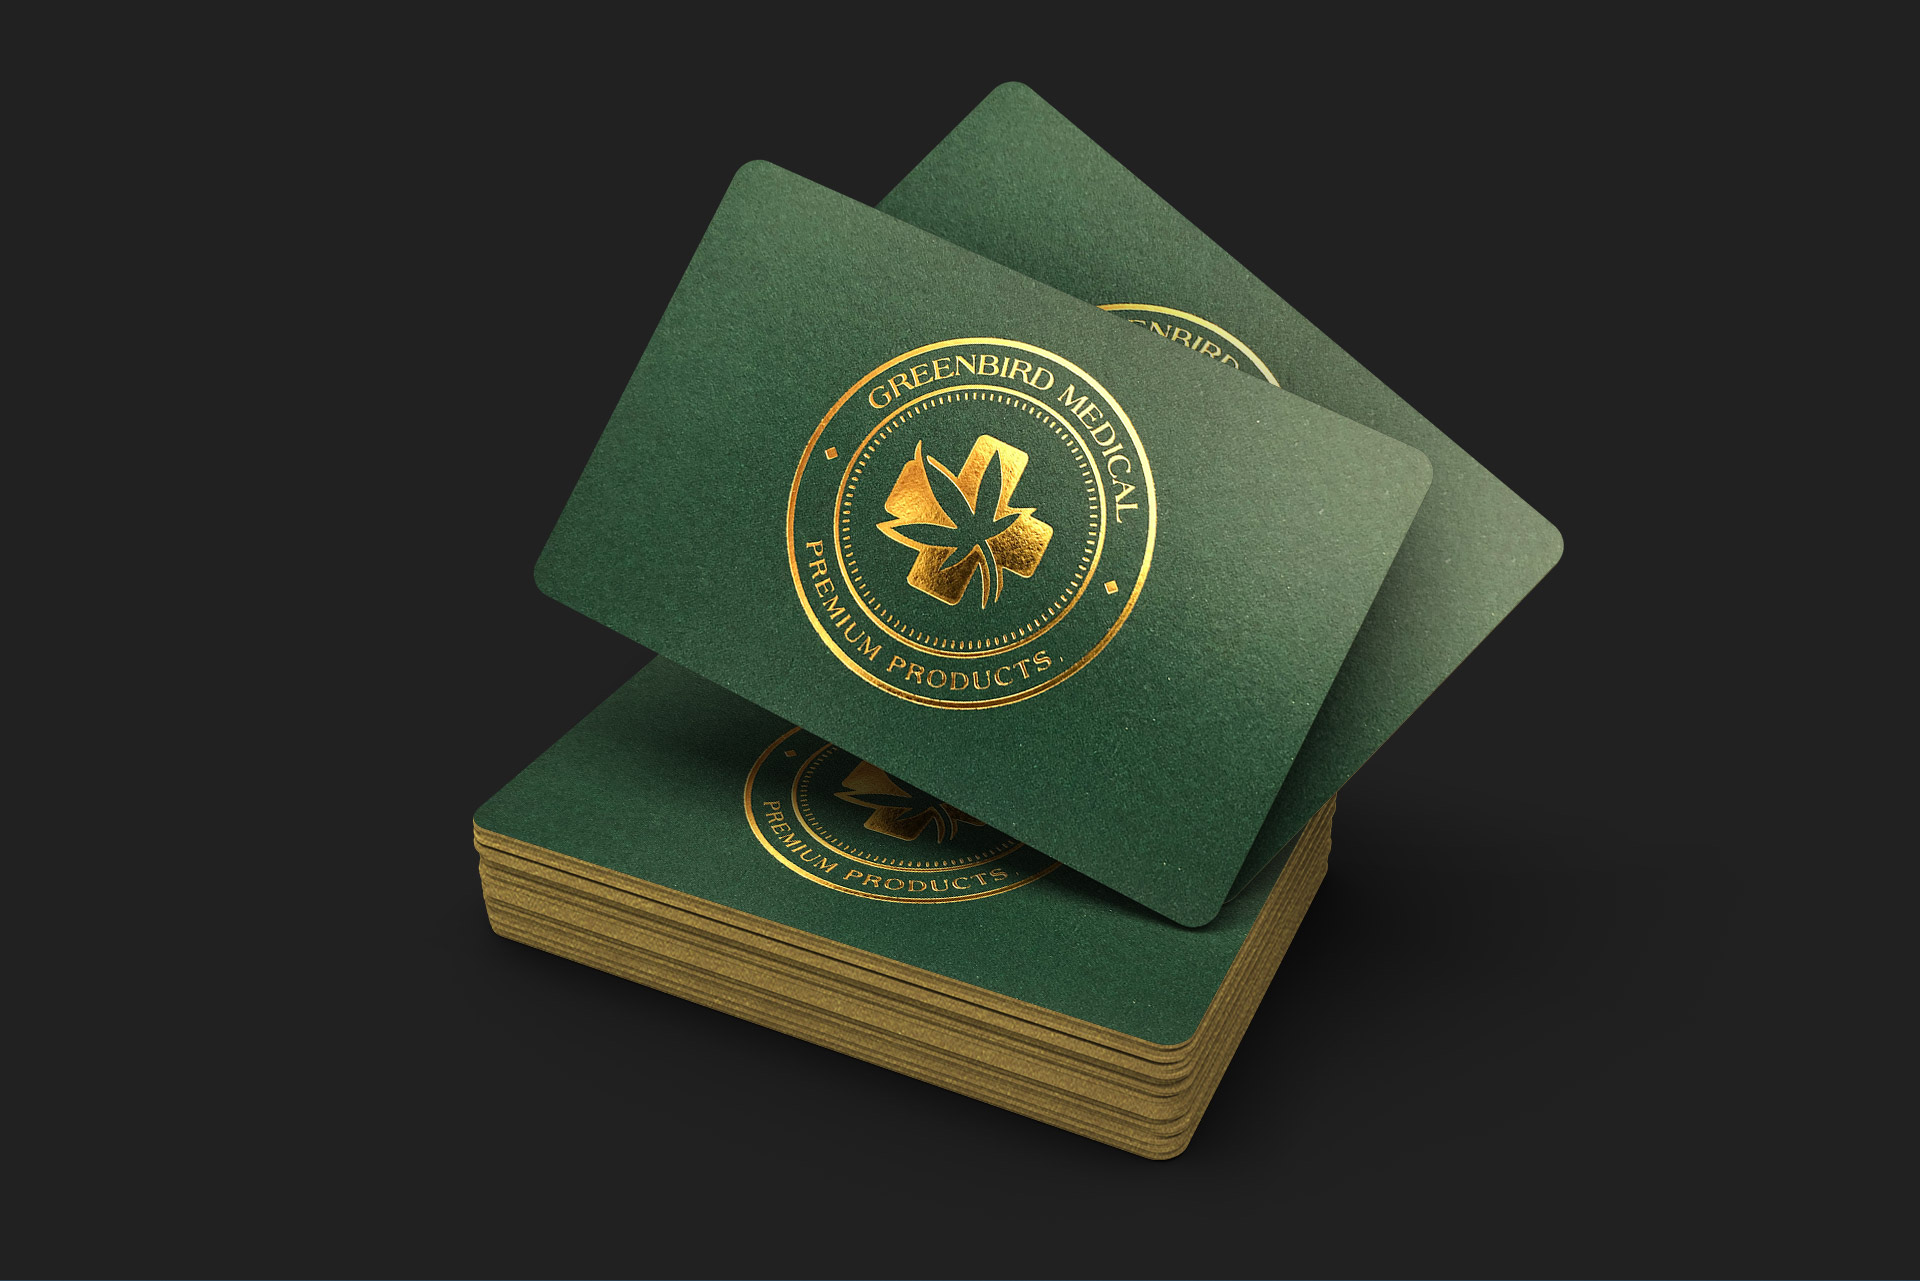 Greenbird Medical - Business Cards - Handle Creativ Werbeagentur